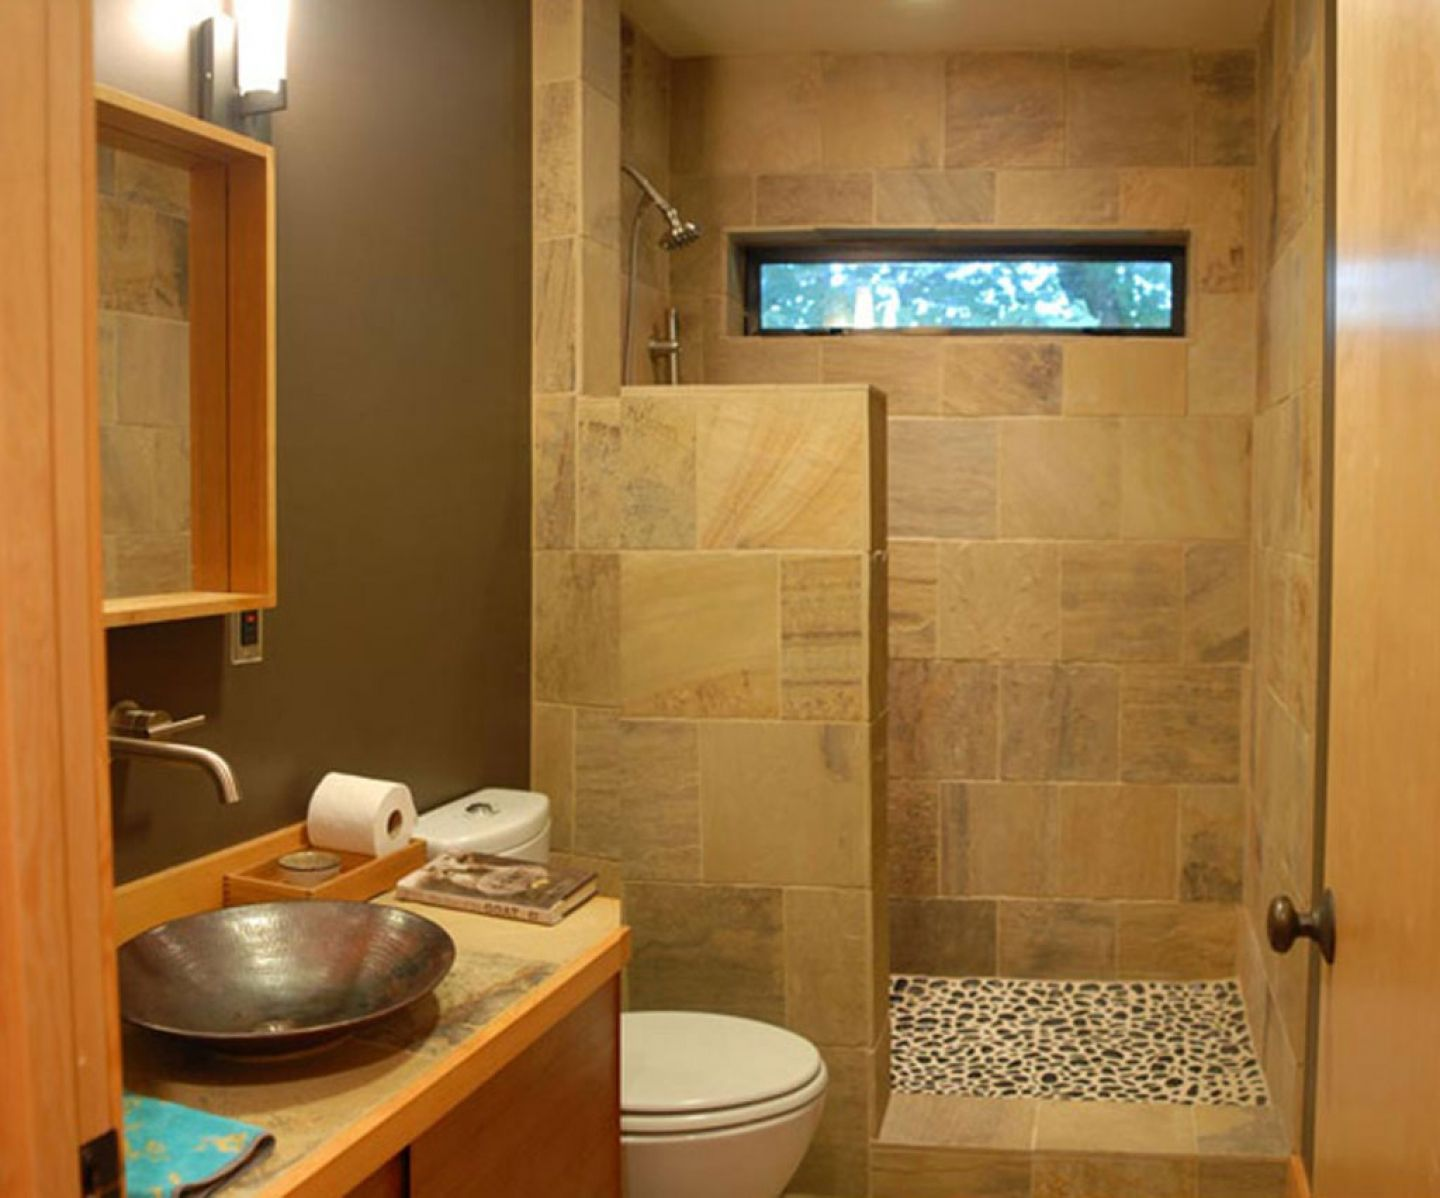 30 Best Small Bathroom Ideas Inexpensive Bathroom Remodel Simple Bathroom Remodel Bathroom Design Small